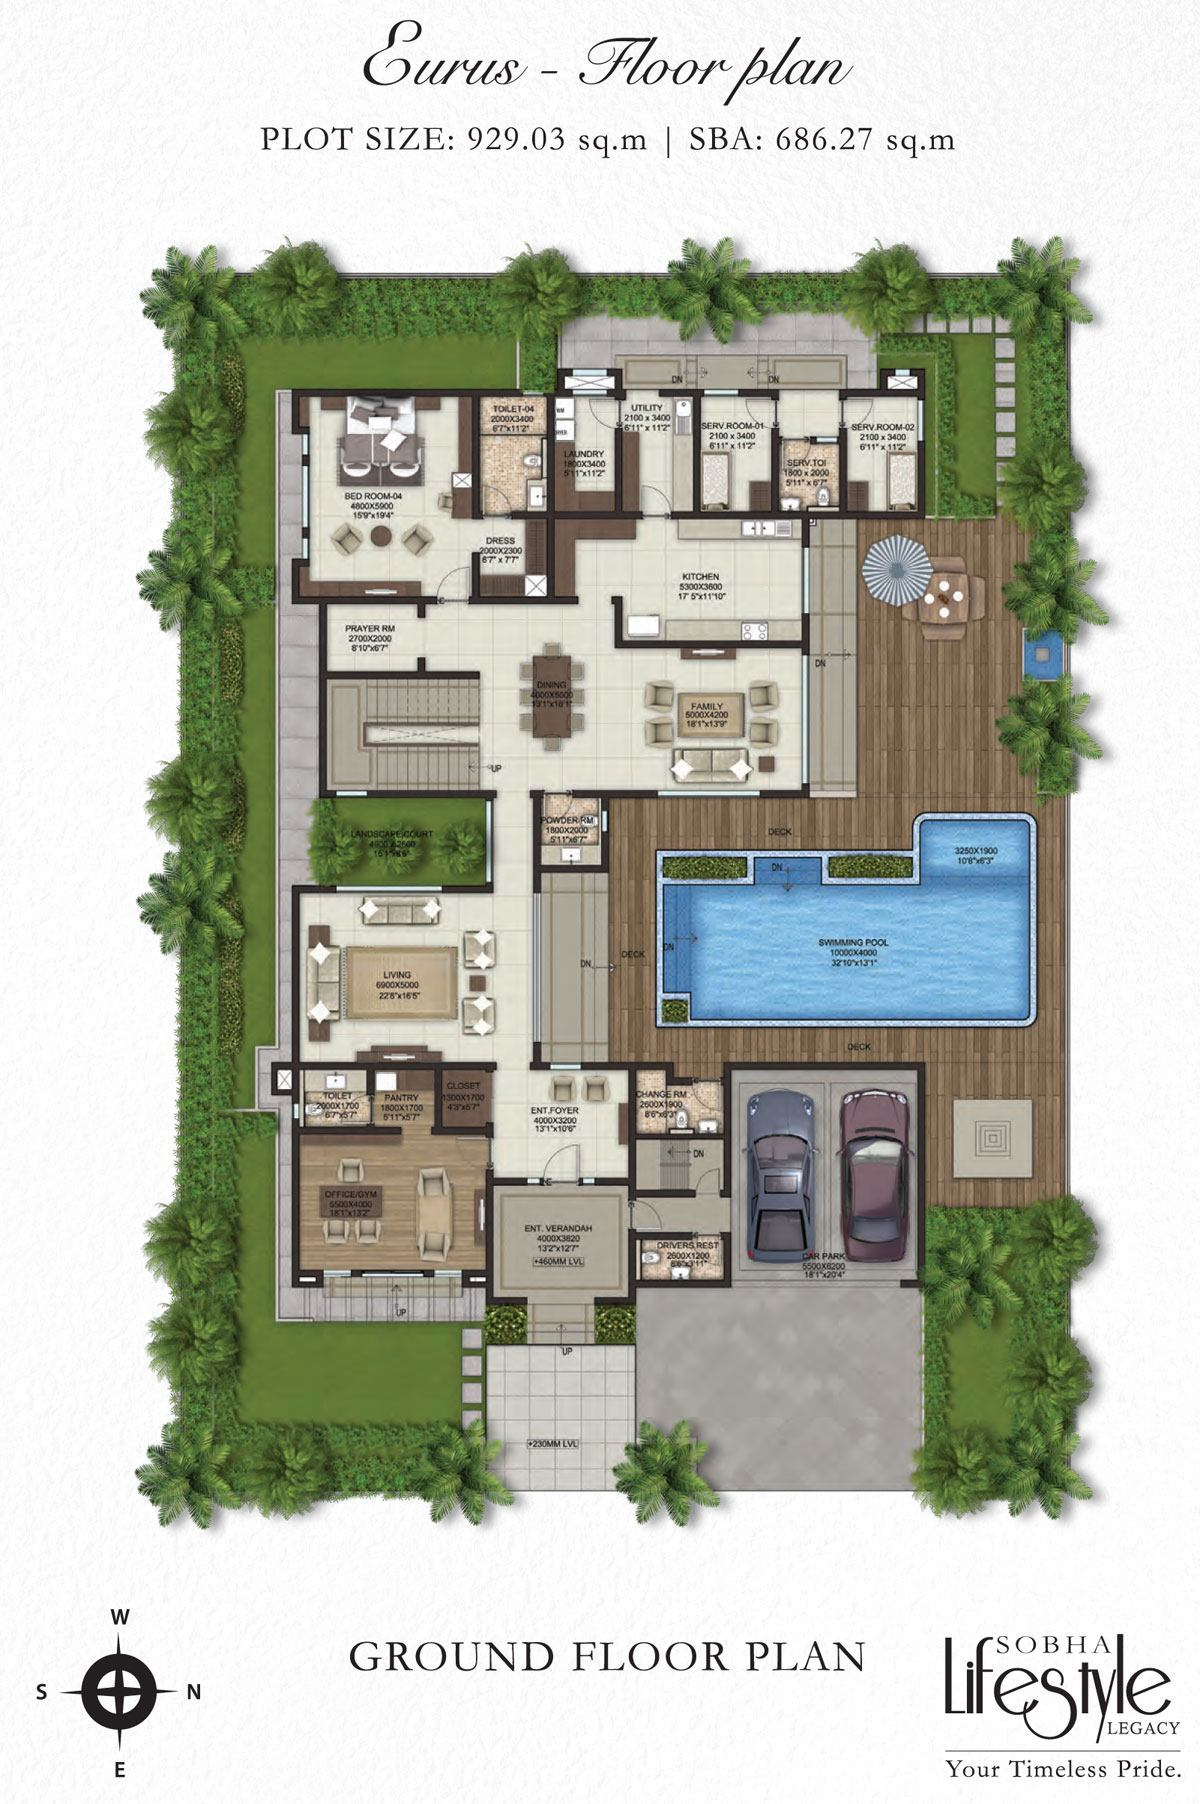 Sobha Lifestyle villa Plans Property First